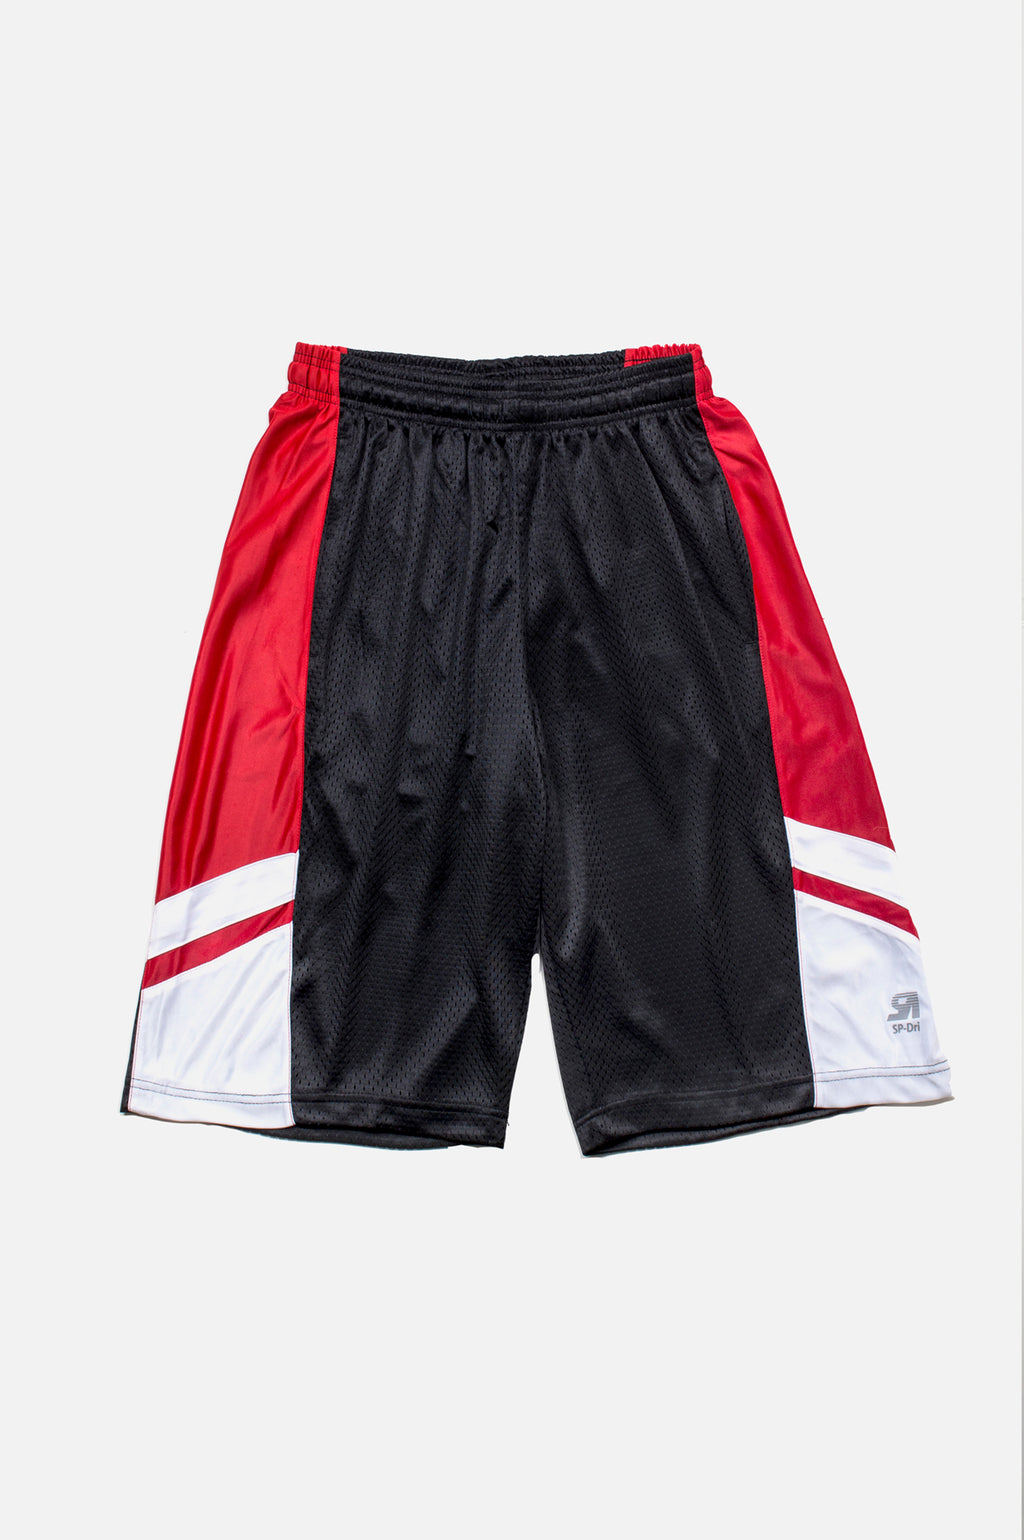 Southpole Mens Basketball Mesh Shorts